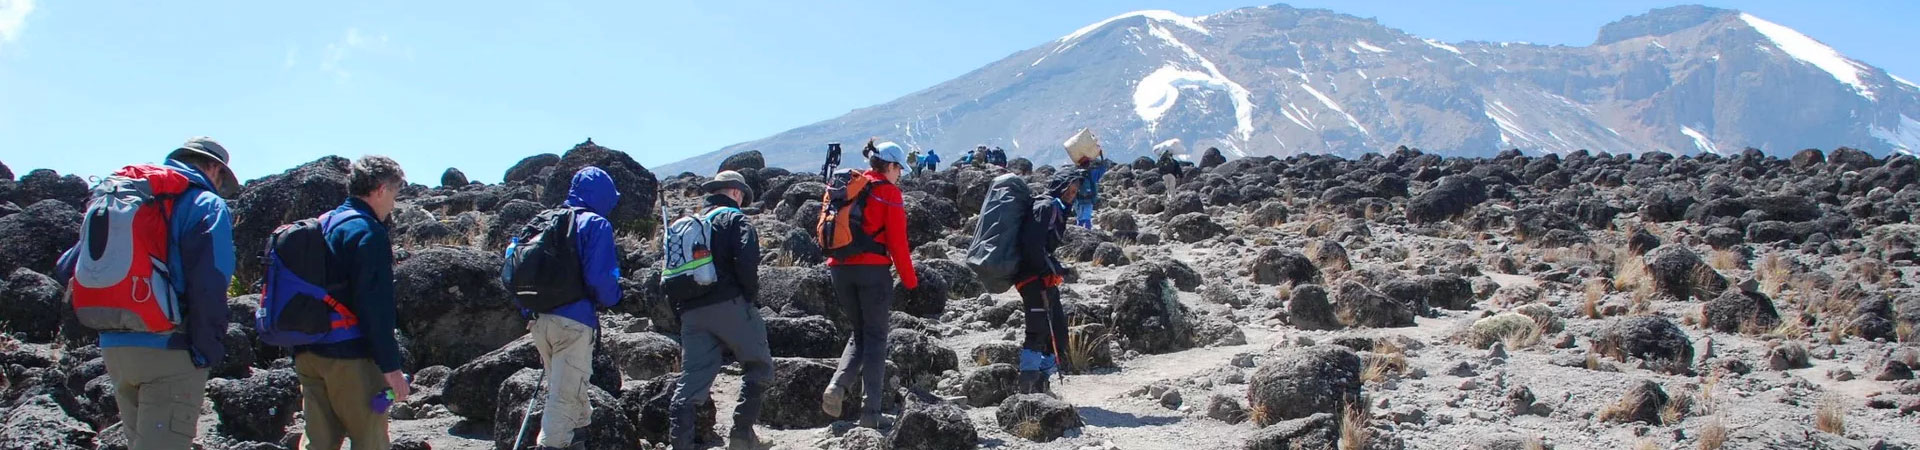 9-Days-Climbing-Kilimanjaro-via-Northern-Circuit-Route.